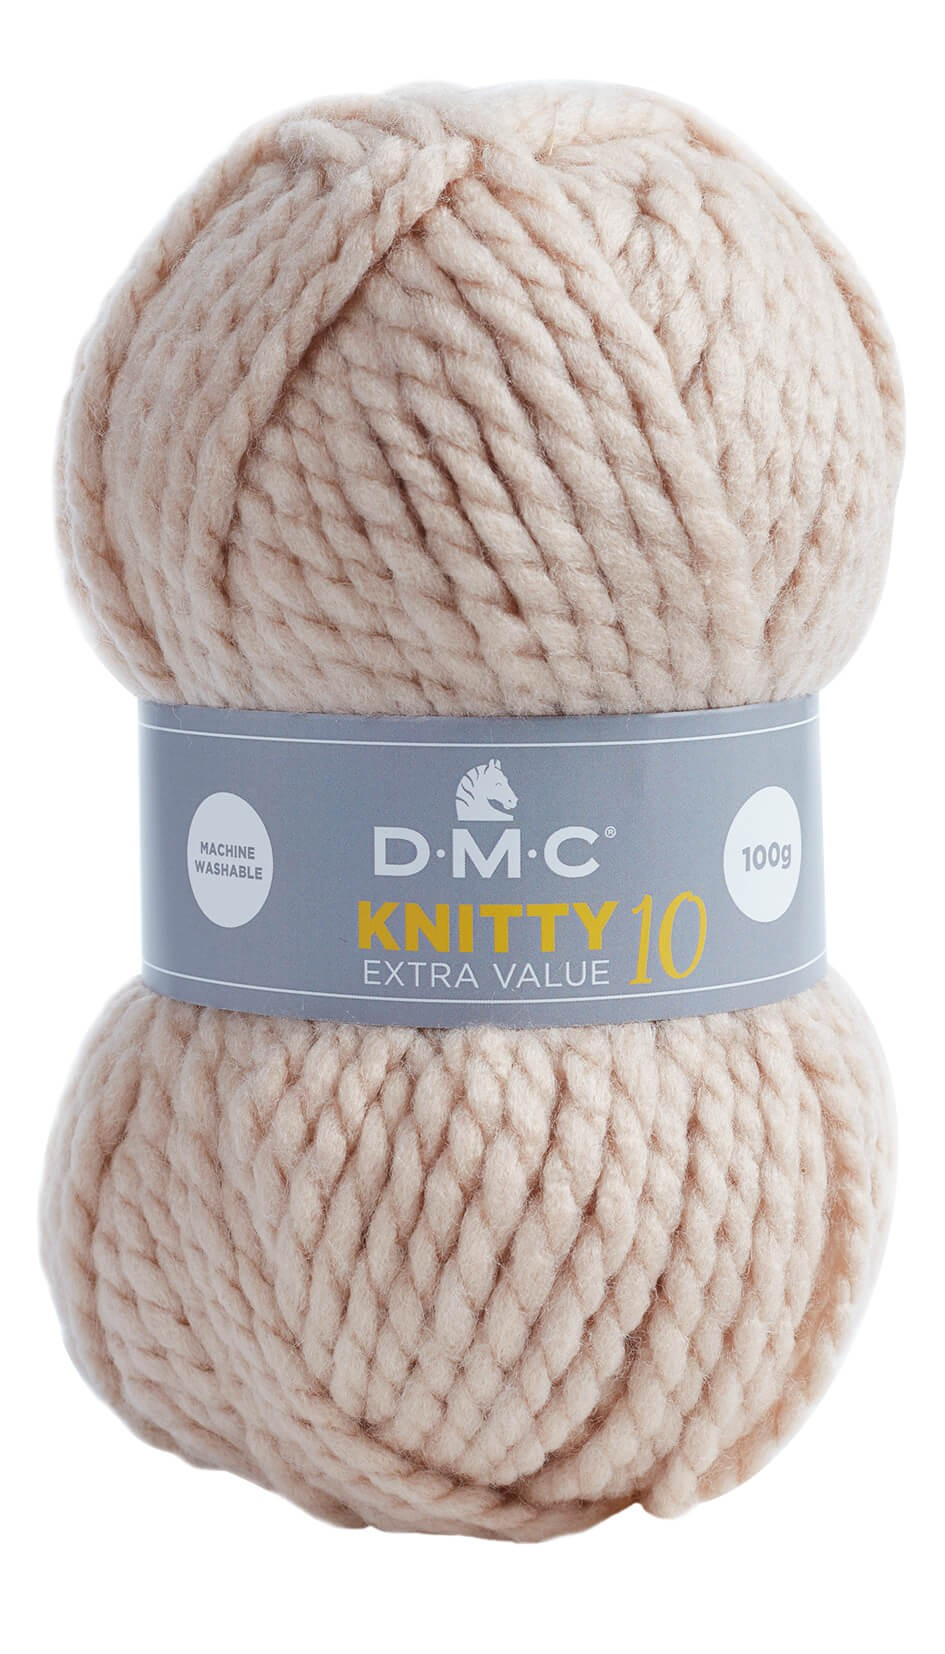 Laine acrylique épaisse DMC Knitty 10 Just Knitting 936